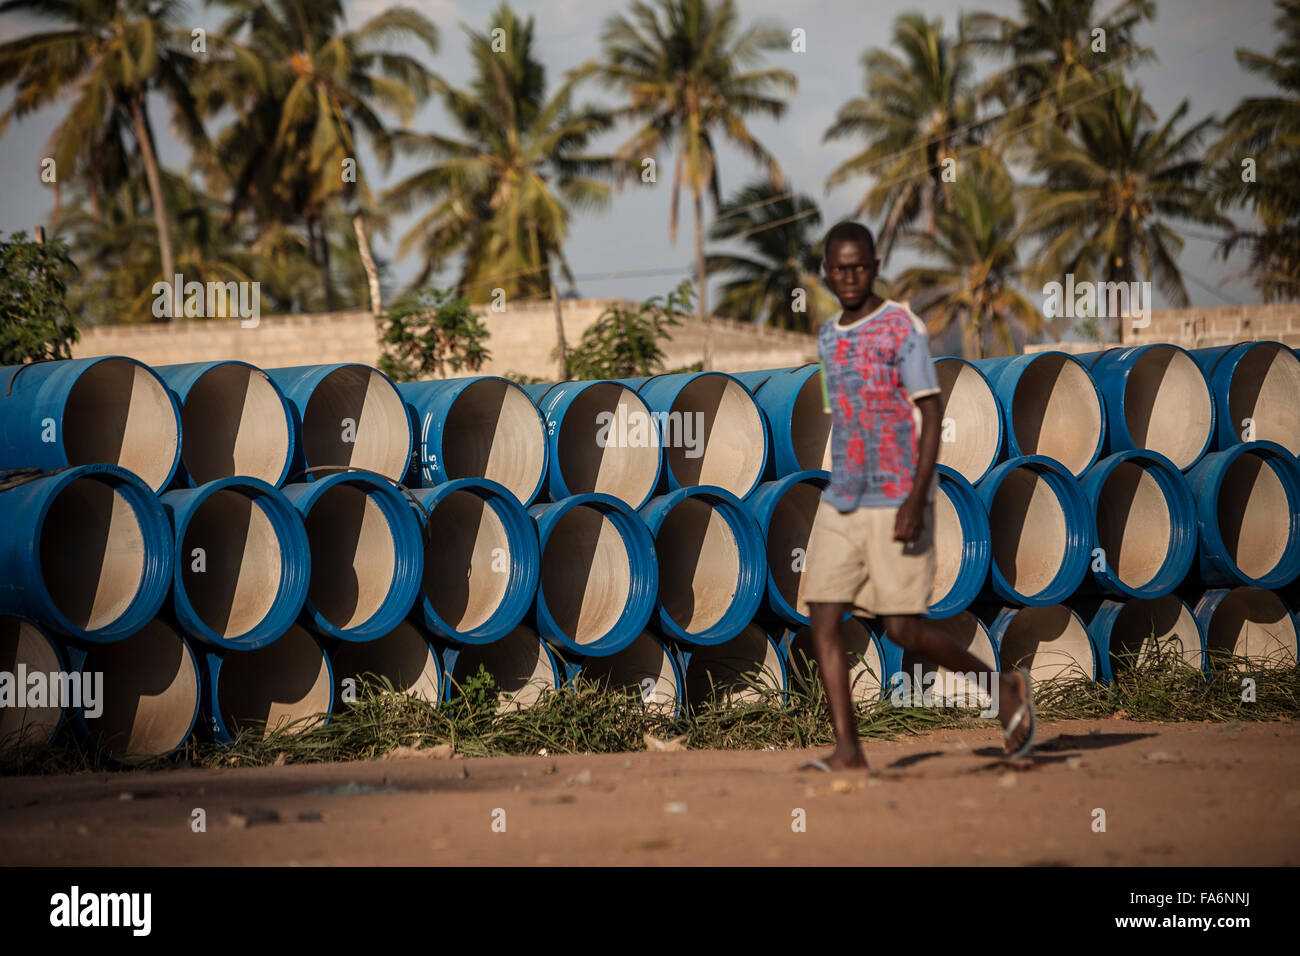 Water pipes await installation in Nampula, Mozambique. - Stock Image